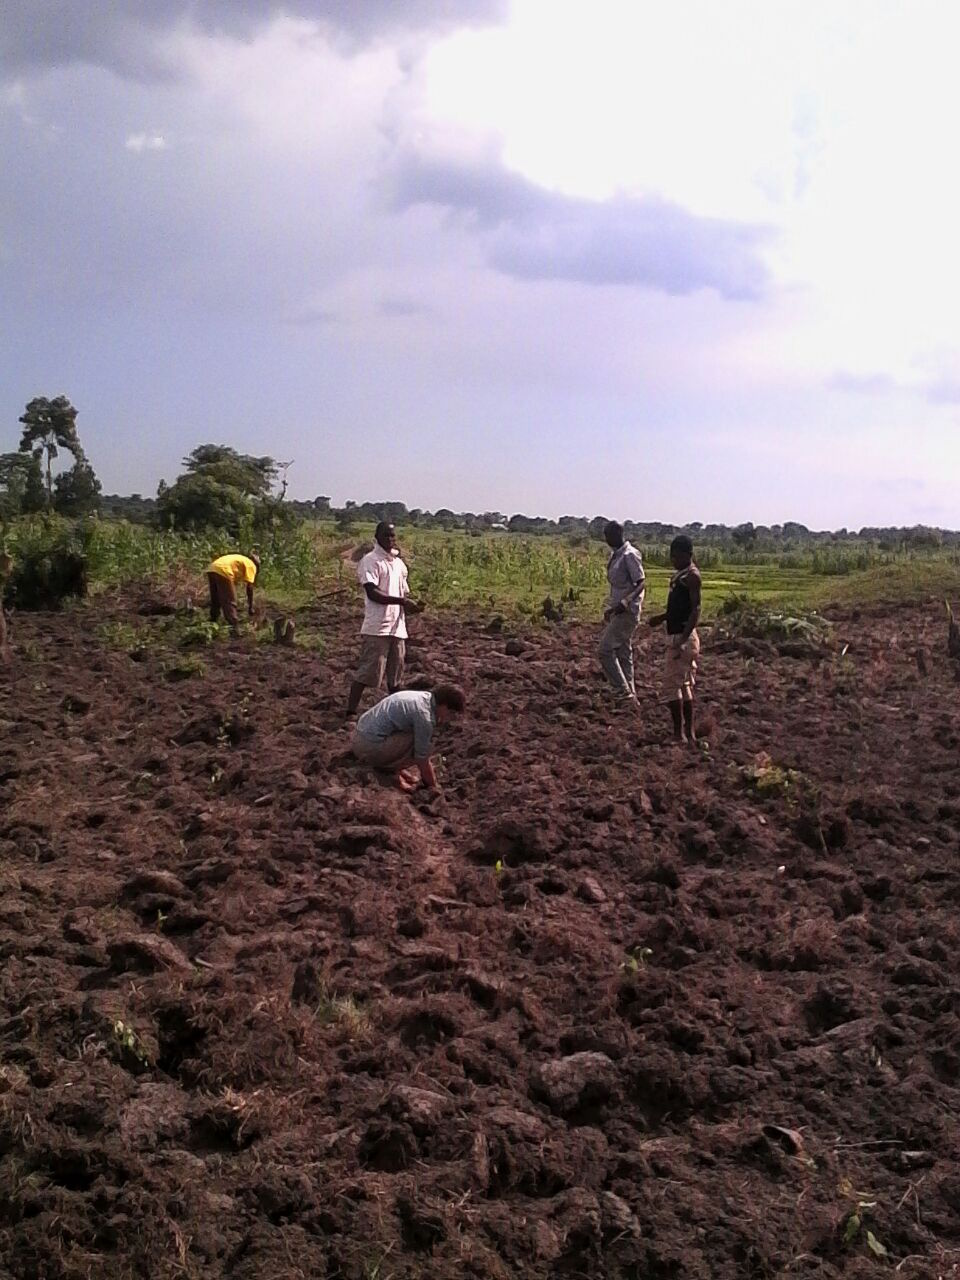 Installation of the new eucalyptus garden in Iganga